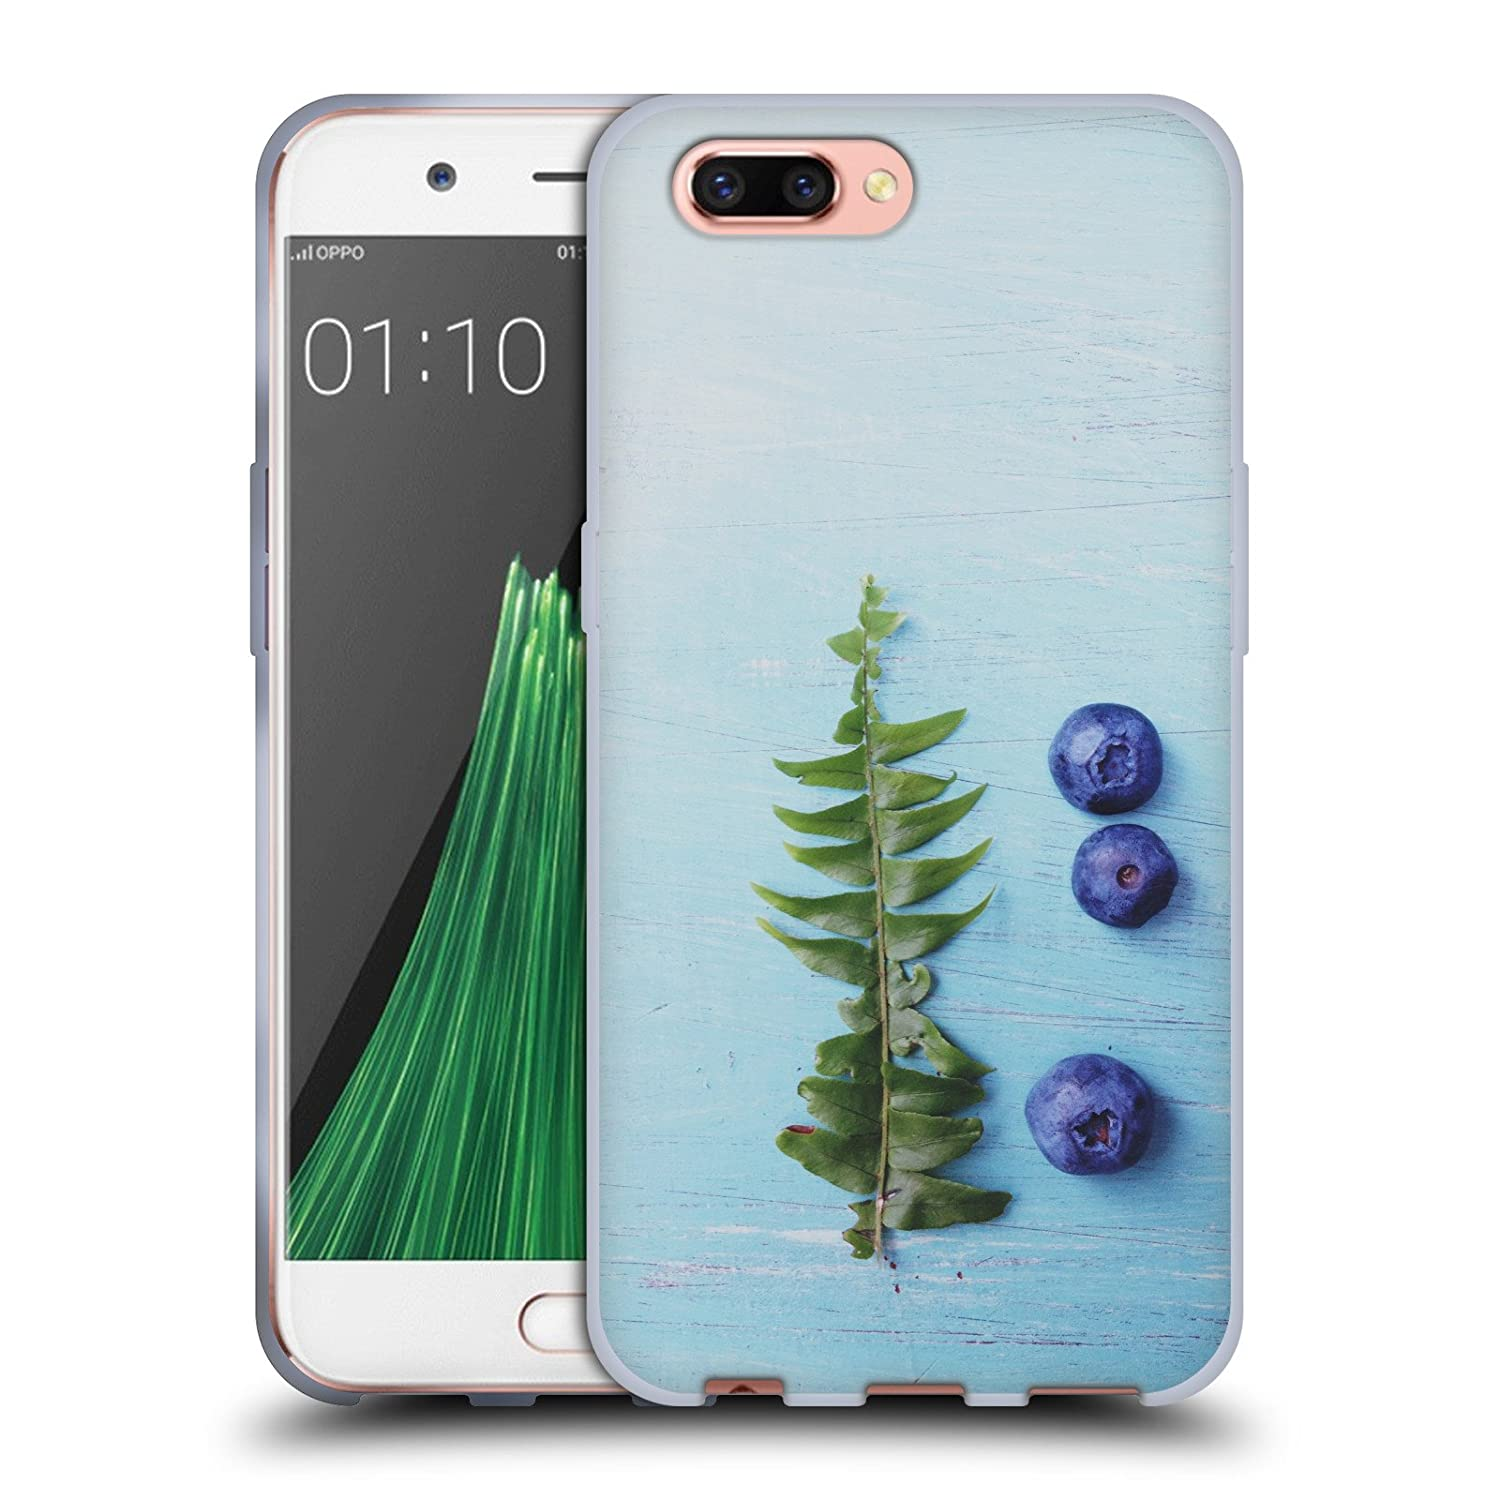 Amazon ficial Olivia Joy StClaire Fern and Blueberries The Table Soft Gel Case for Oppo R11 Plus Cell Phones & Accessories